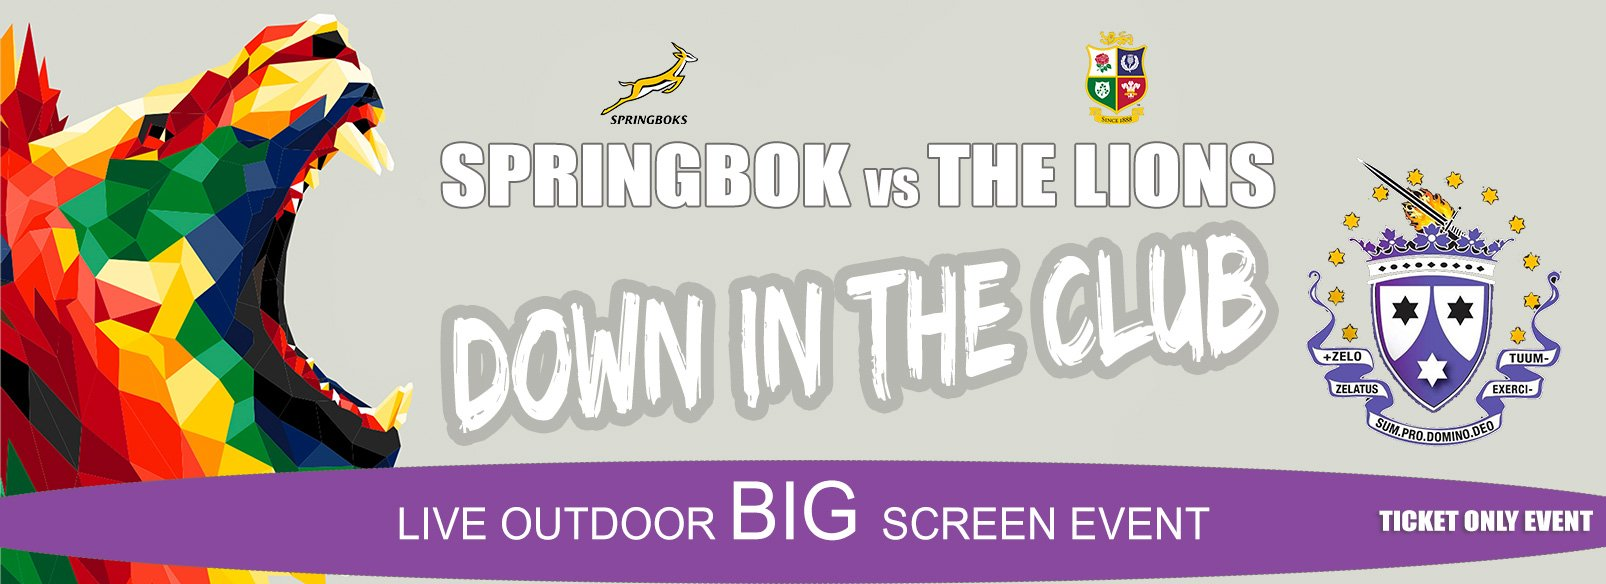 See the Springbok play the Lions on the big screen